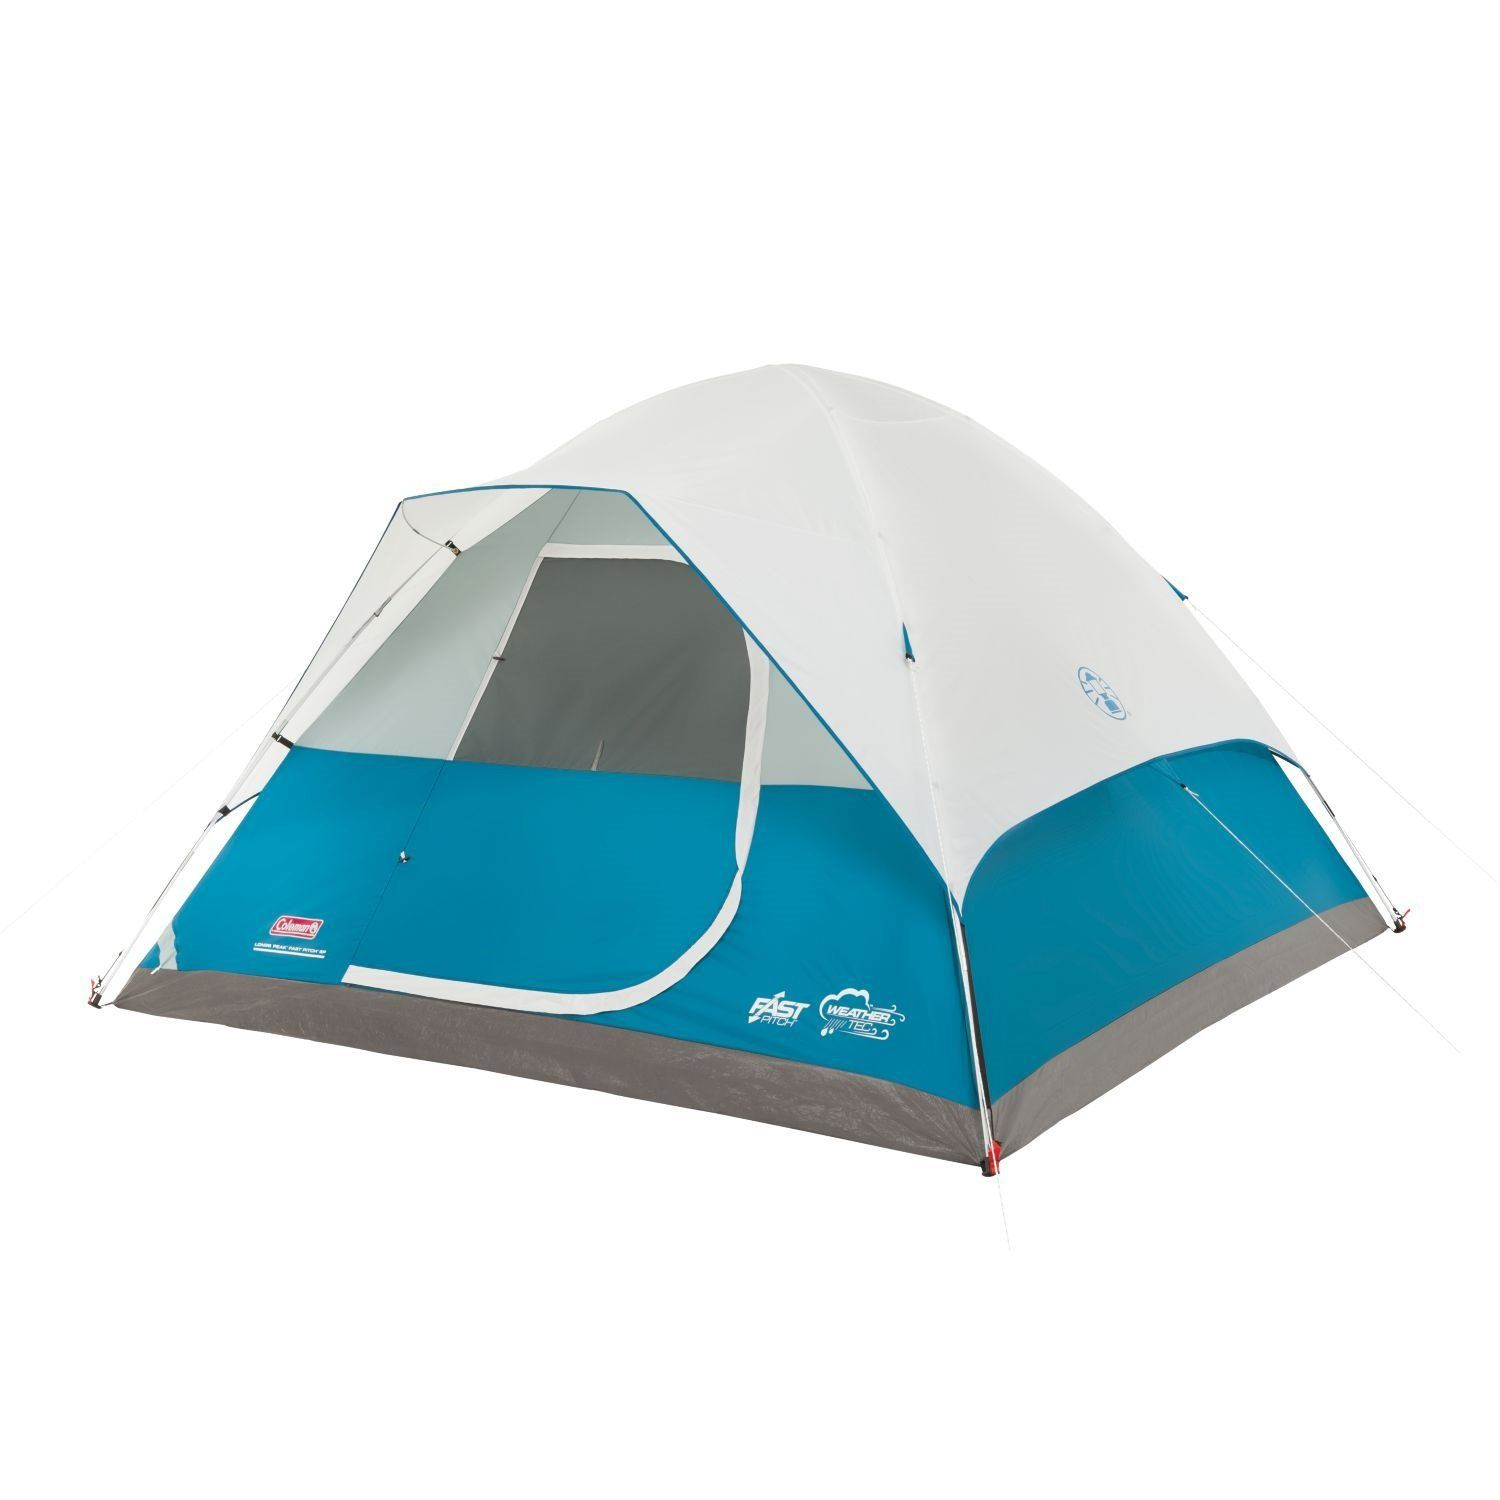 What Is The Best Best Family Tent To Get Right Now